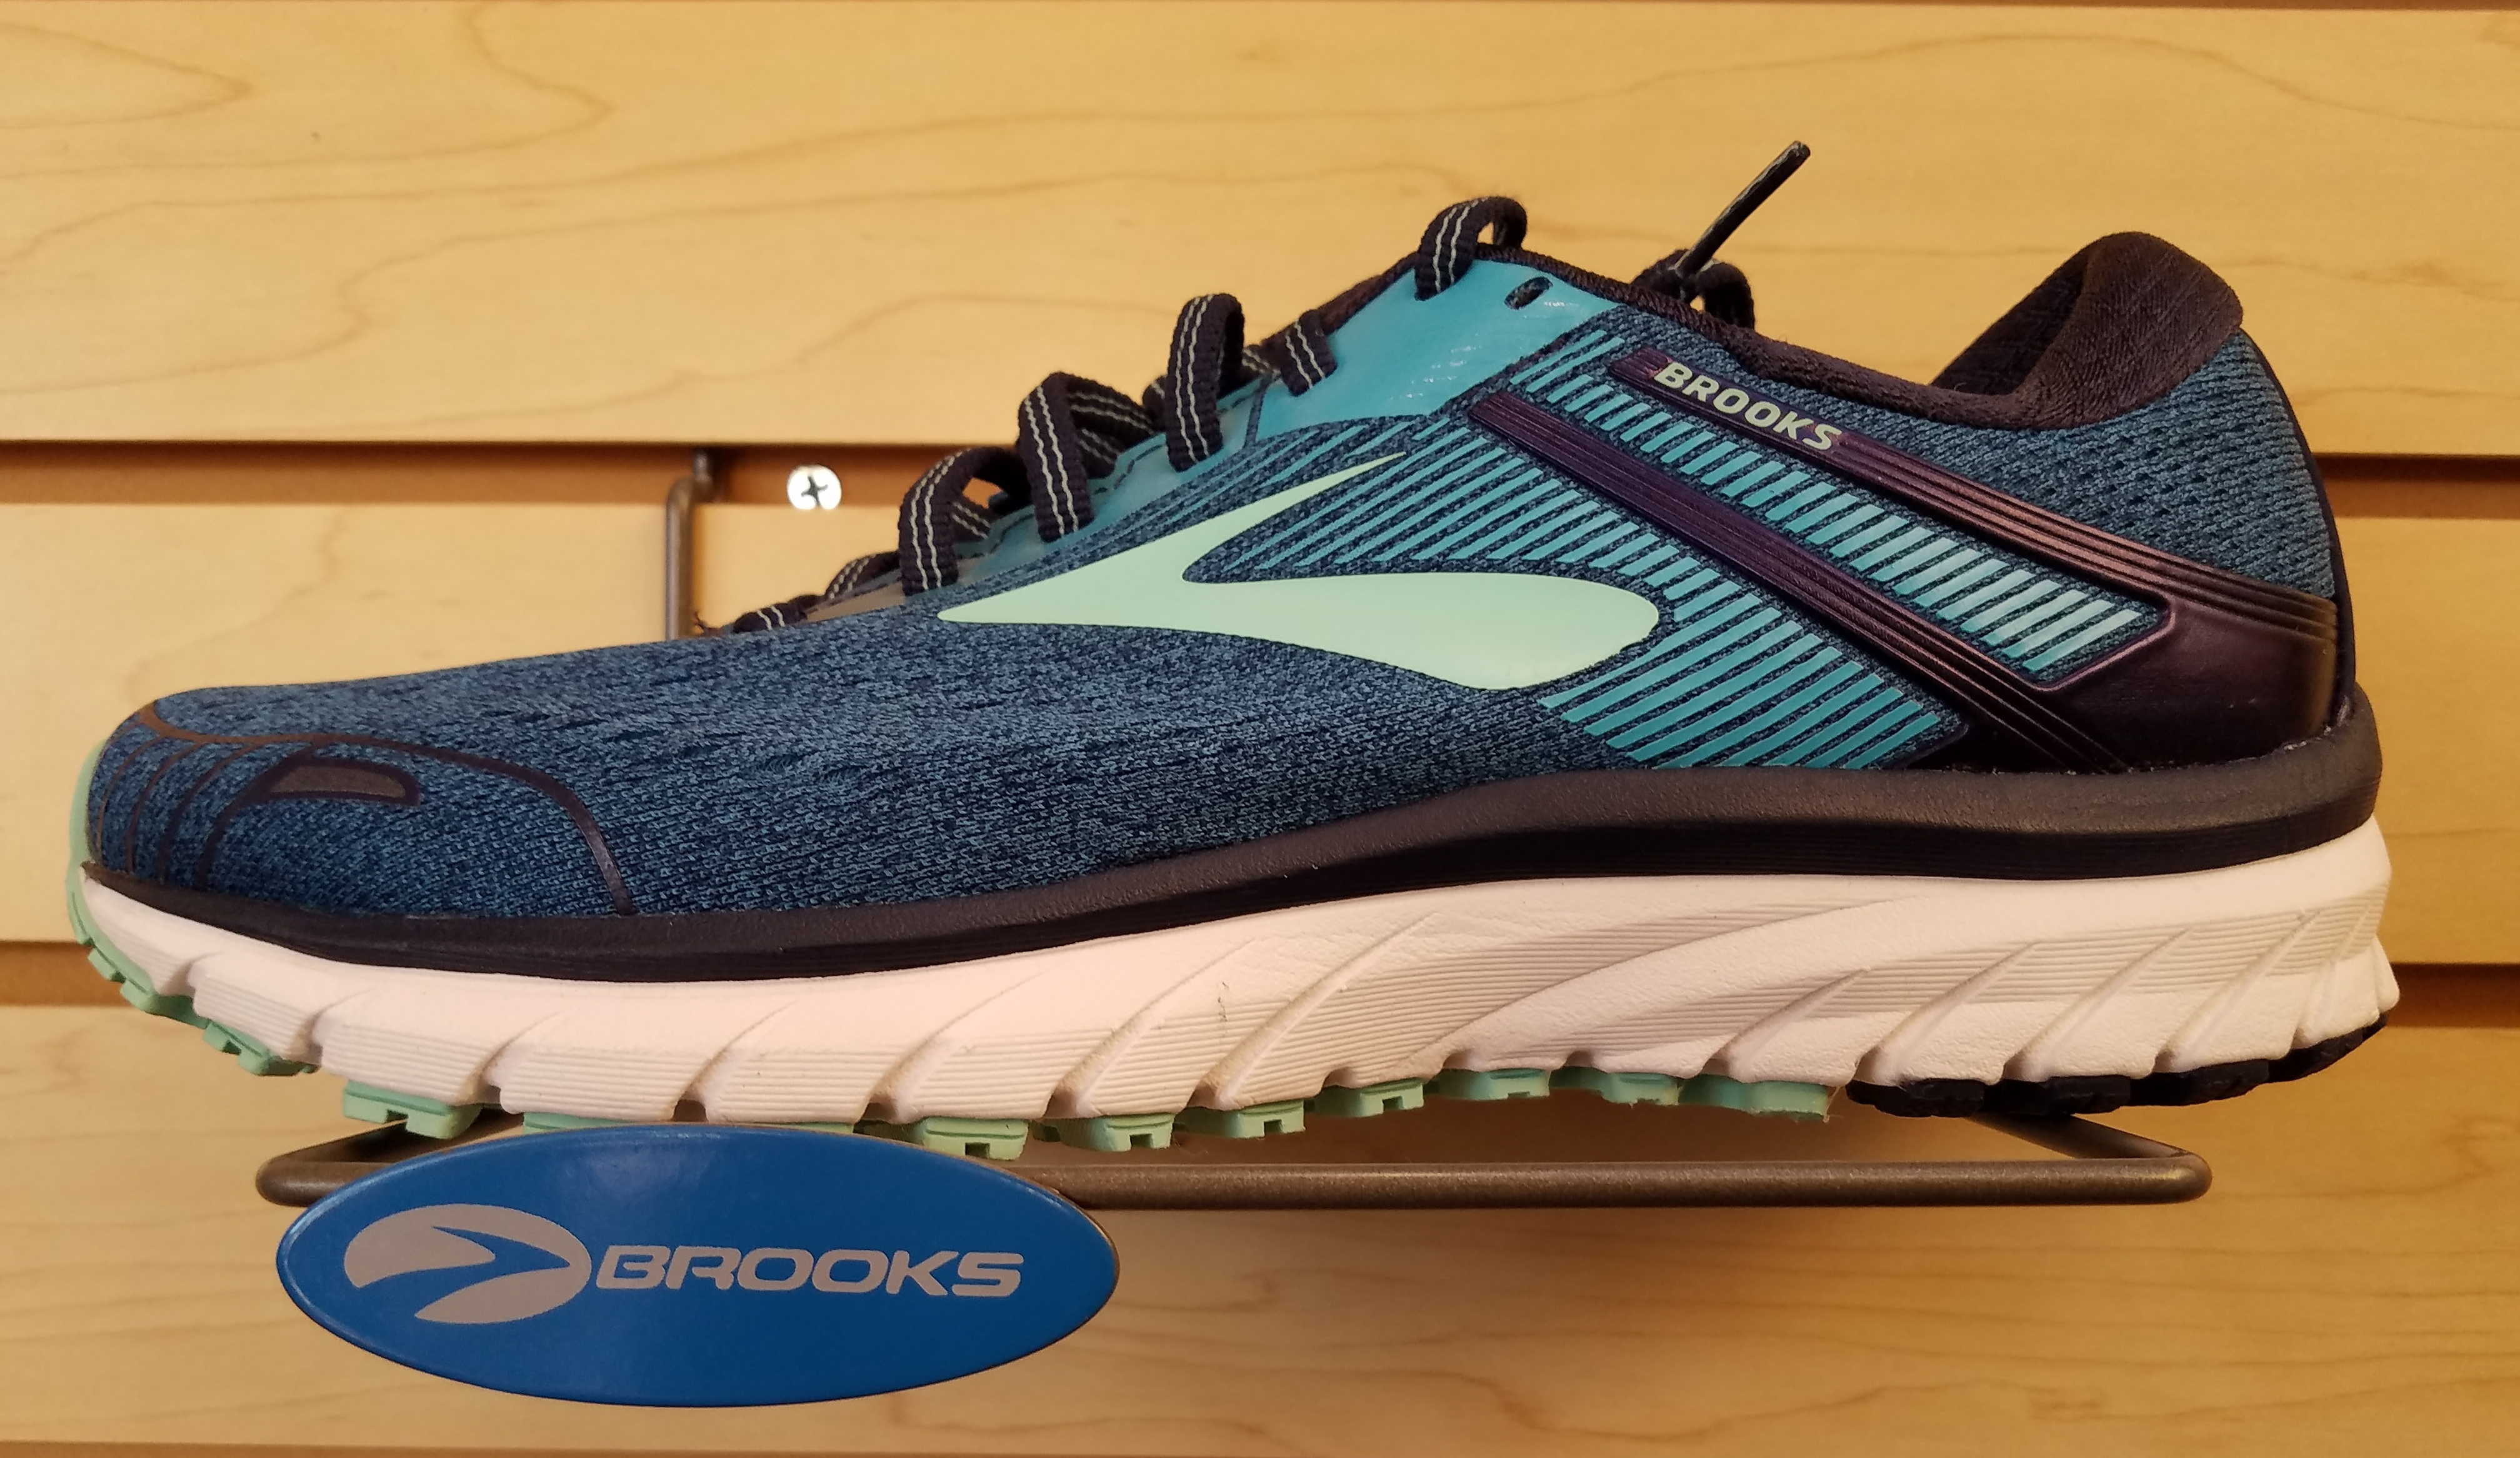 2933c4d714587 Brooks Sports - Wikiwand